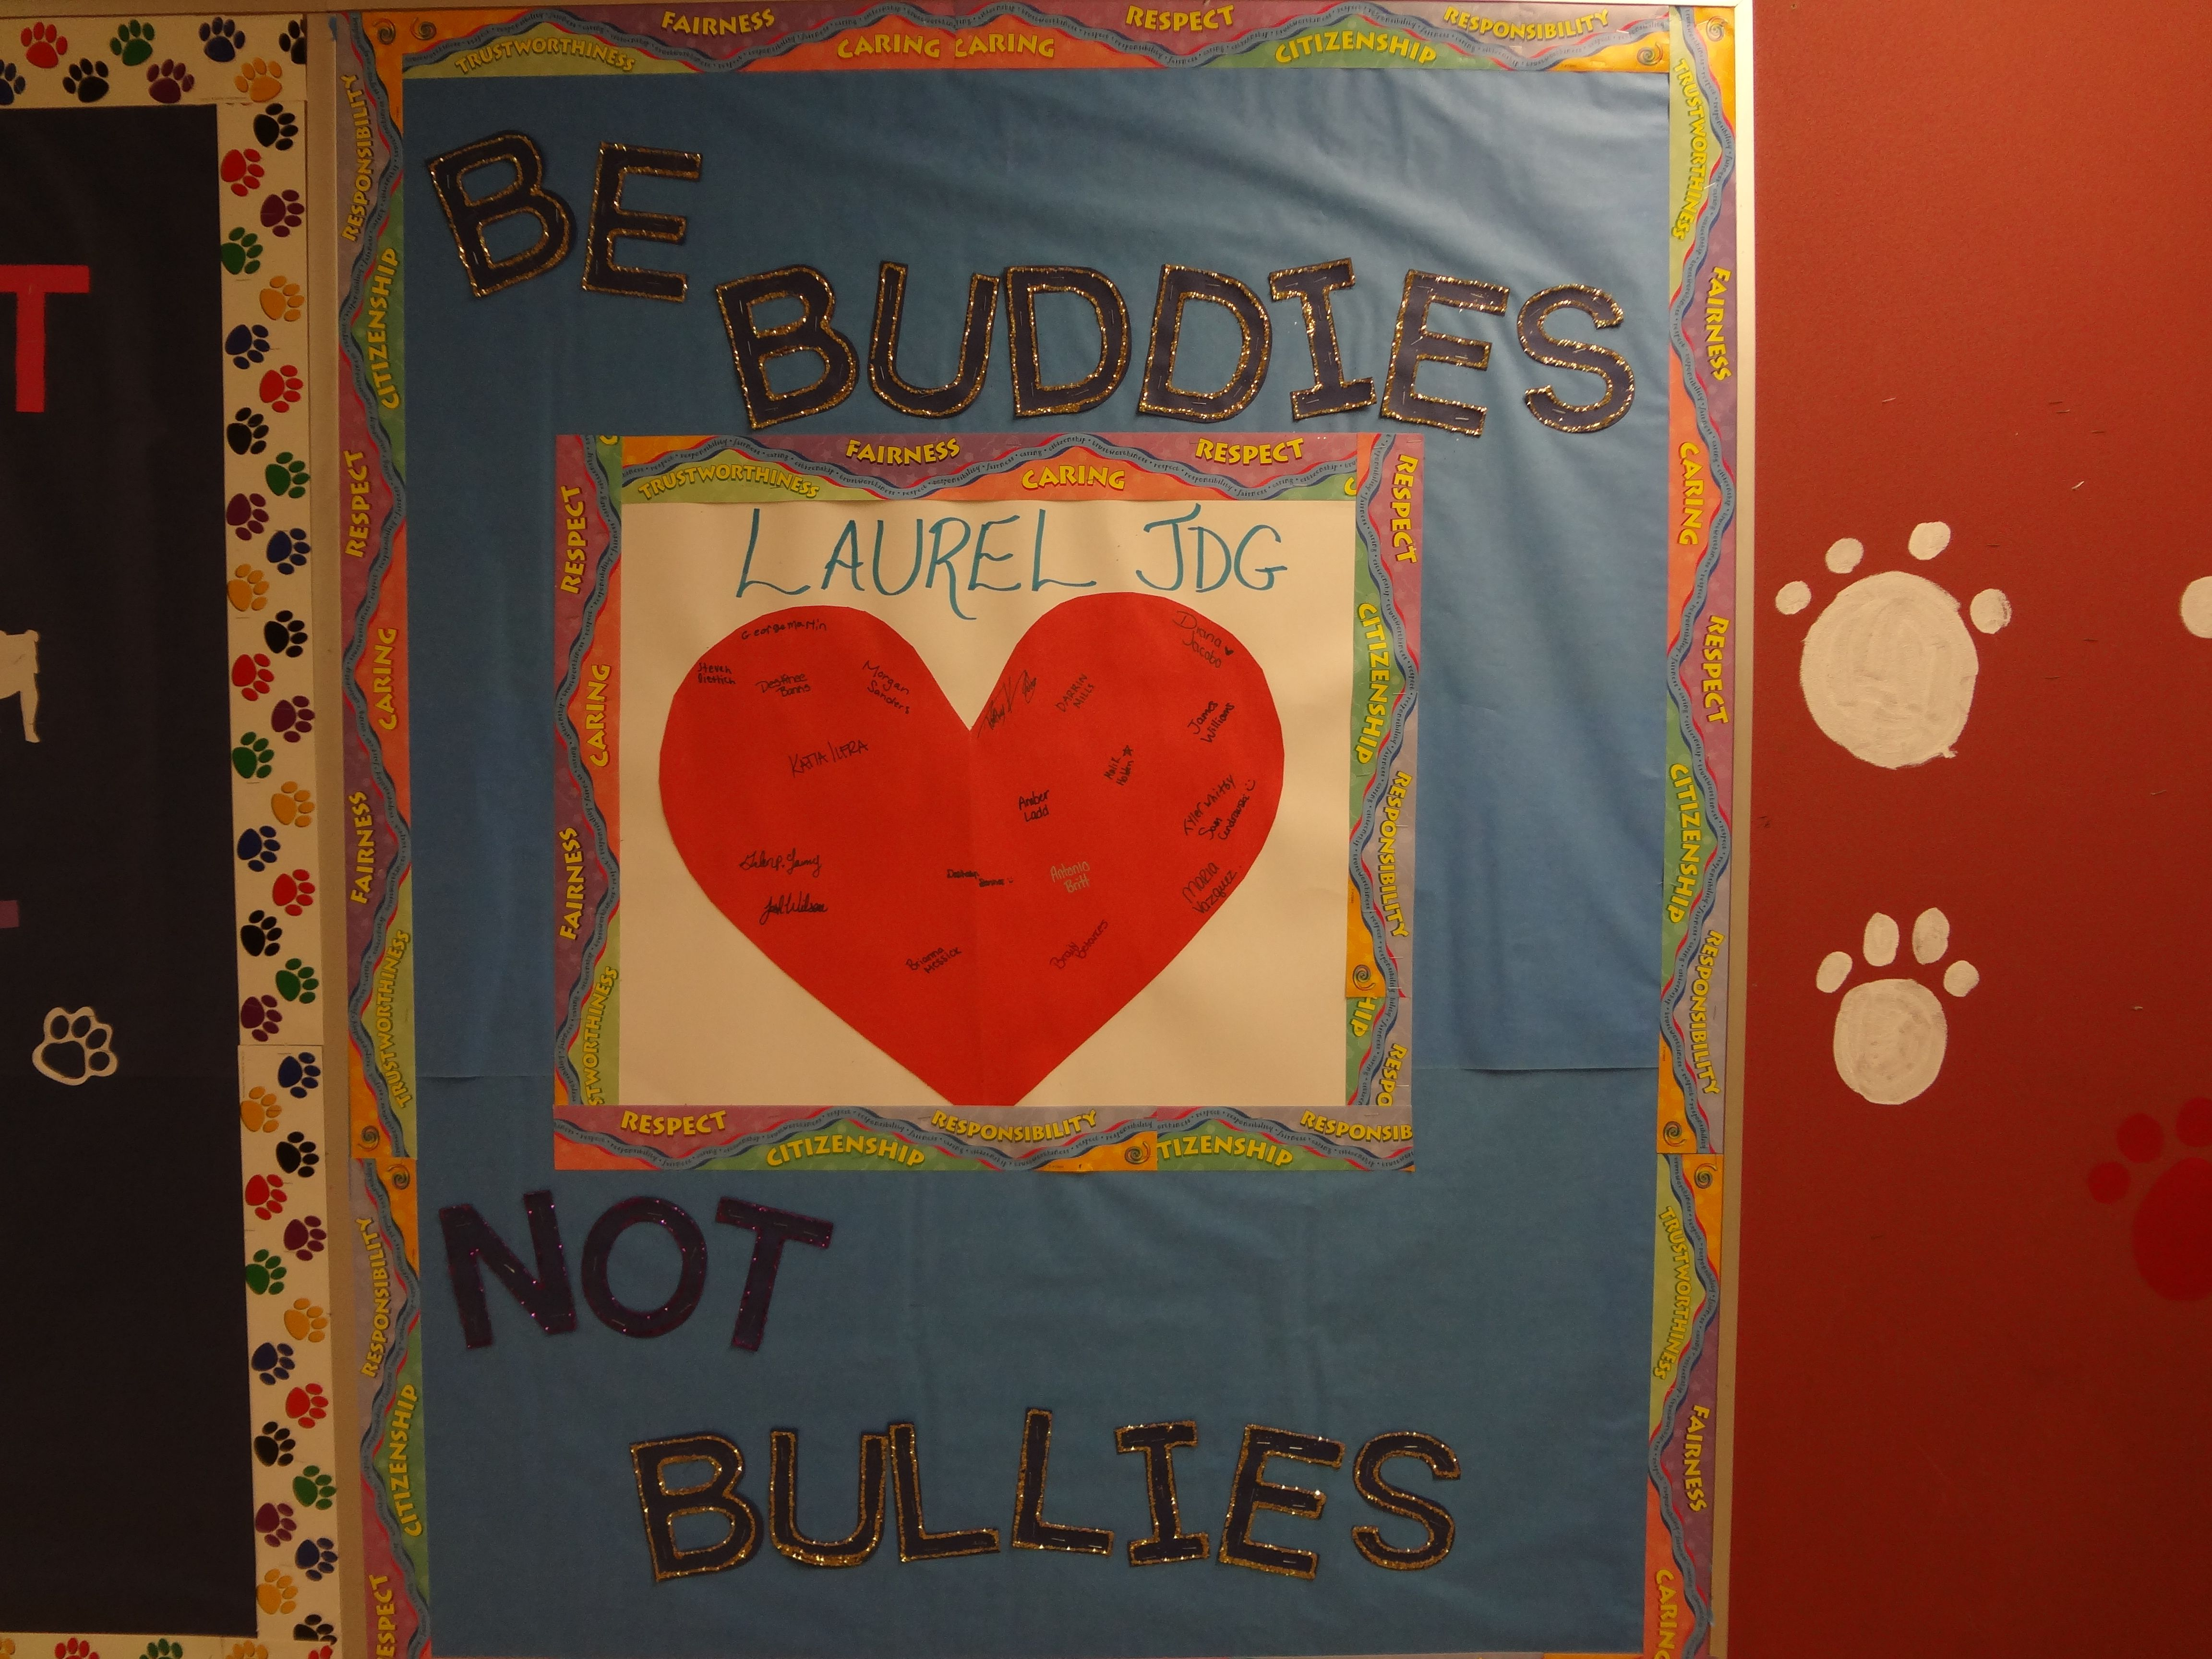 Be A Buddy Not A Bully Campaign